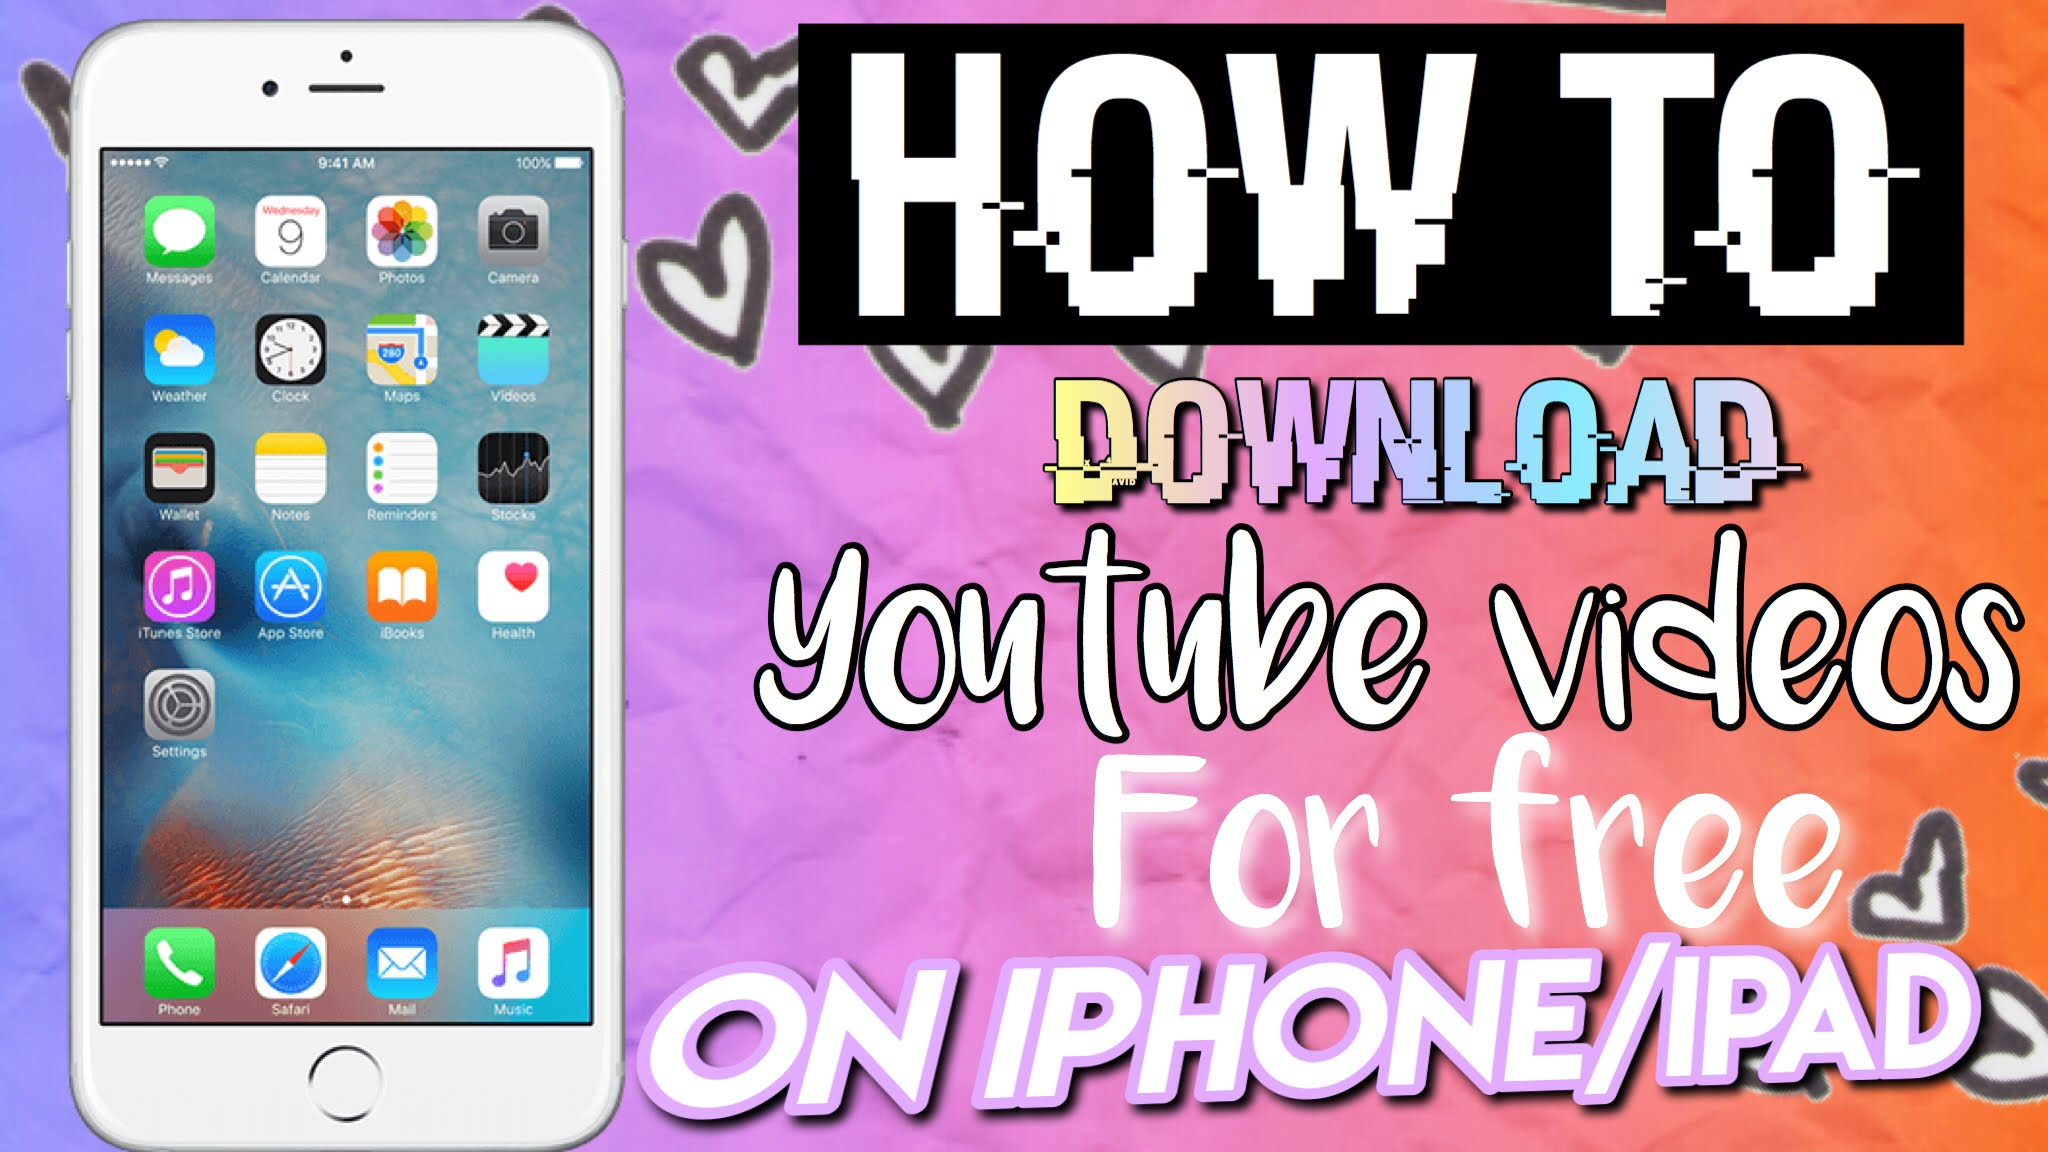 Download YouTube Videos as MP3 on iPhone/iPad